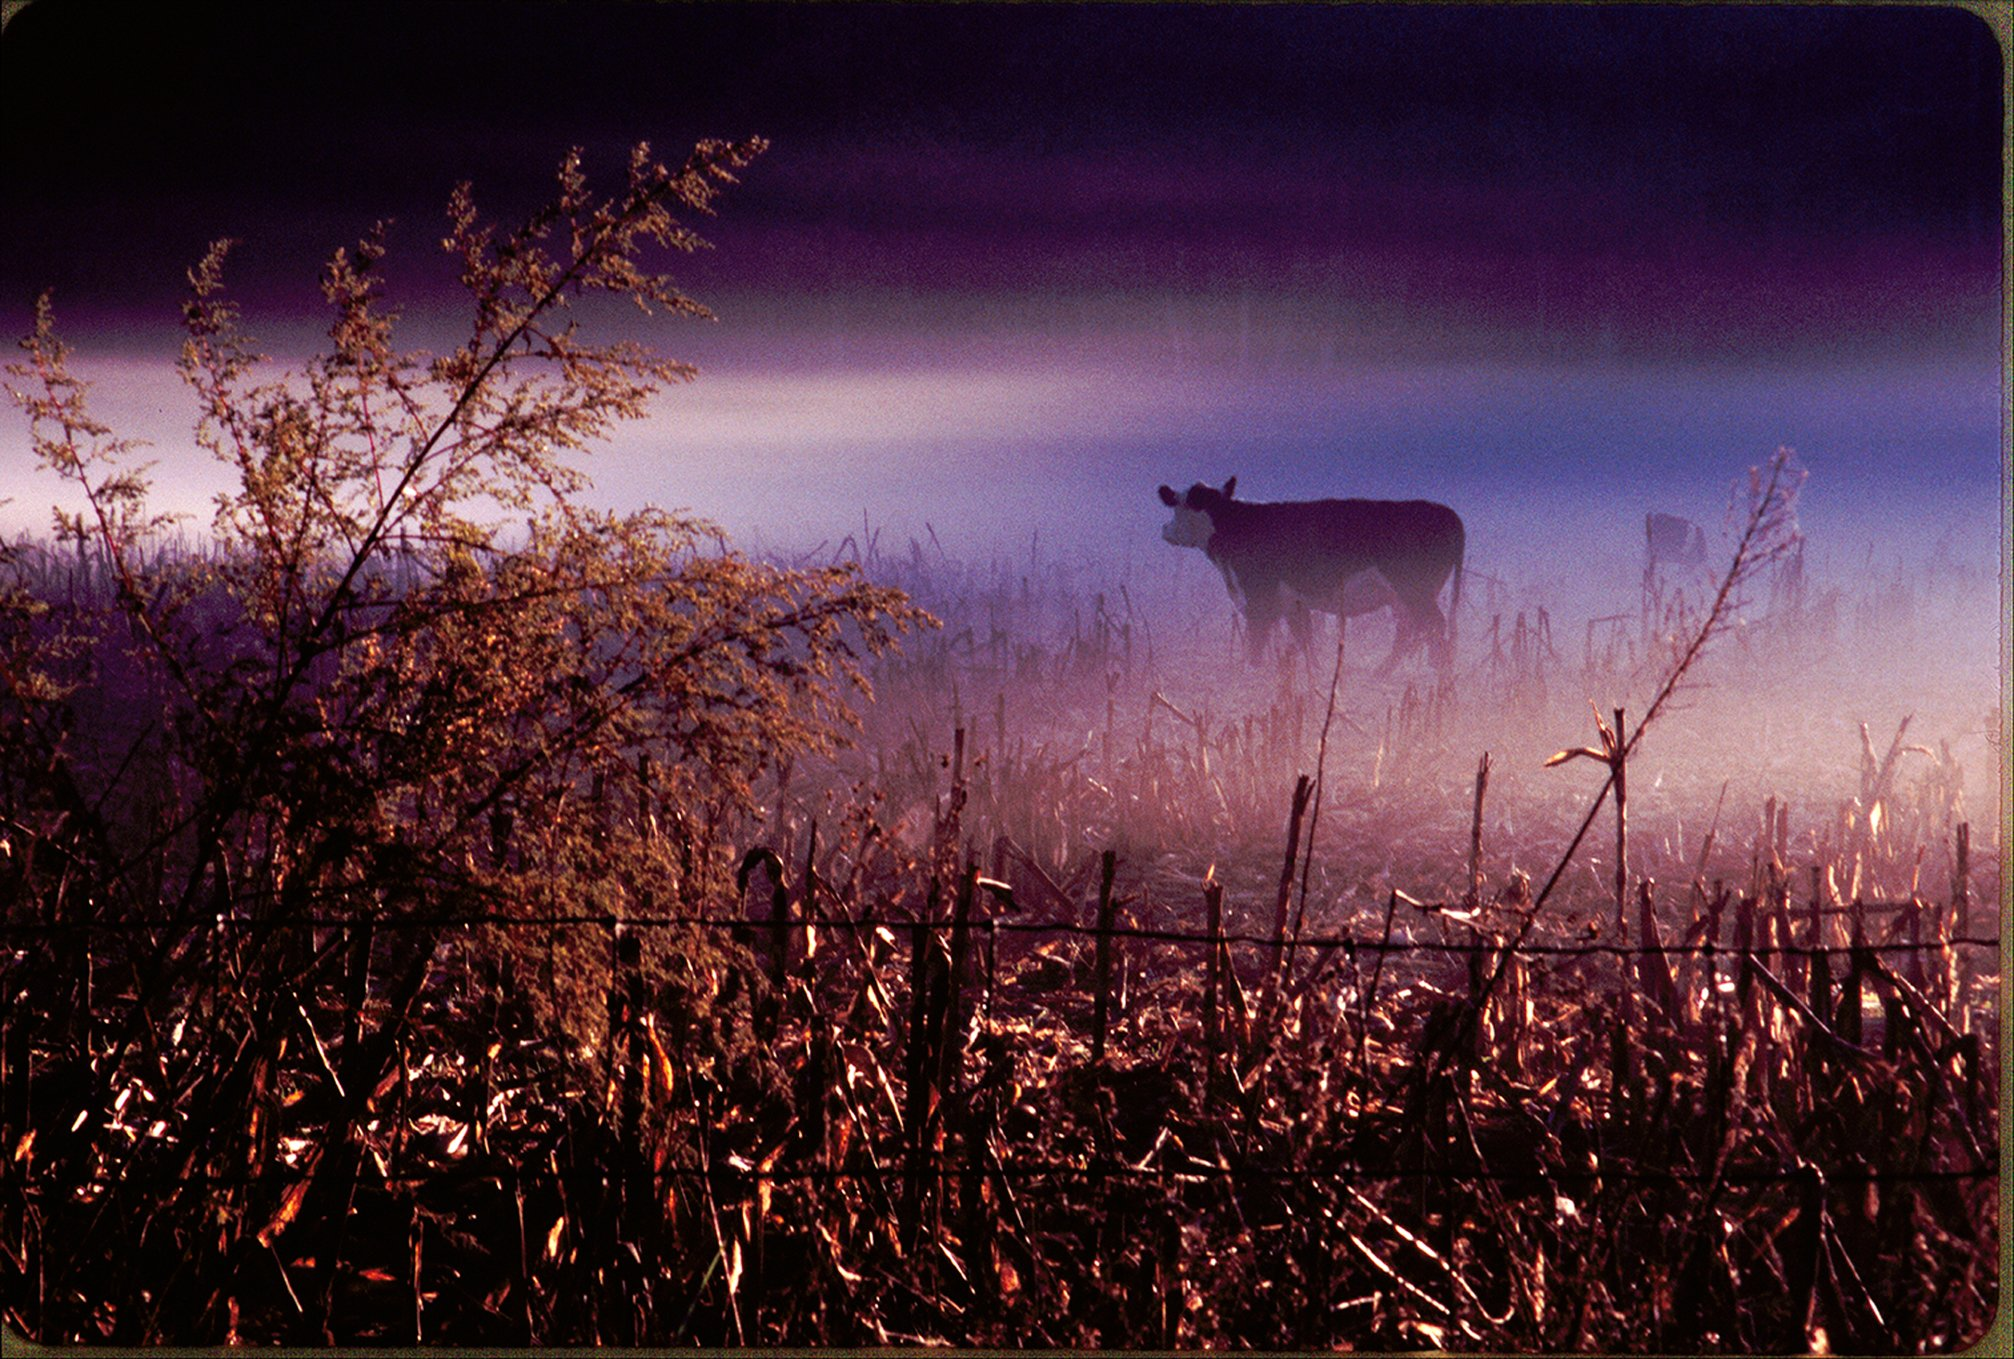 Cow in morning cornfield